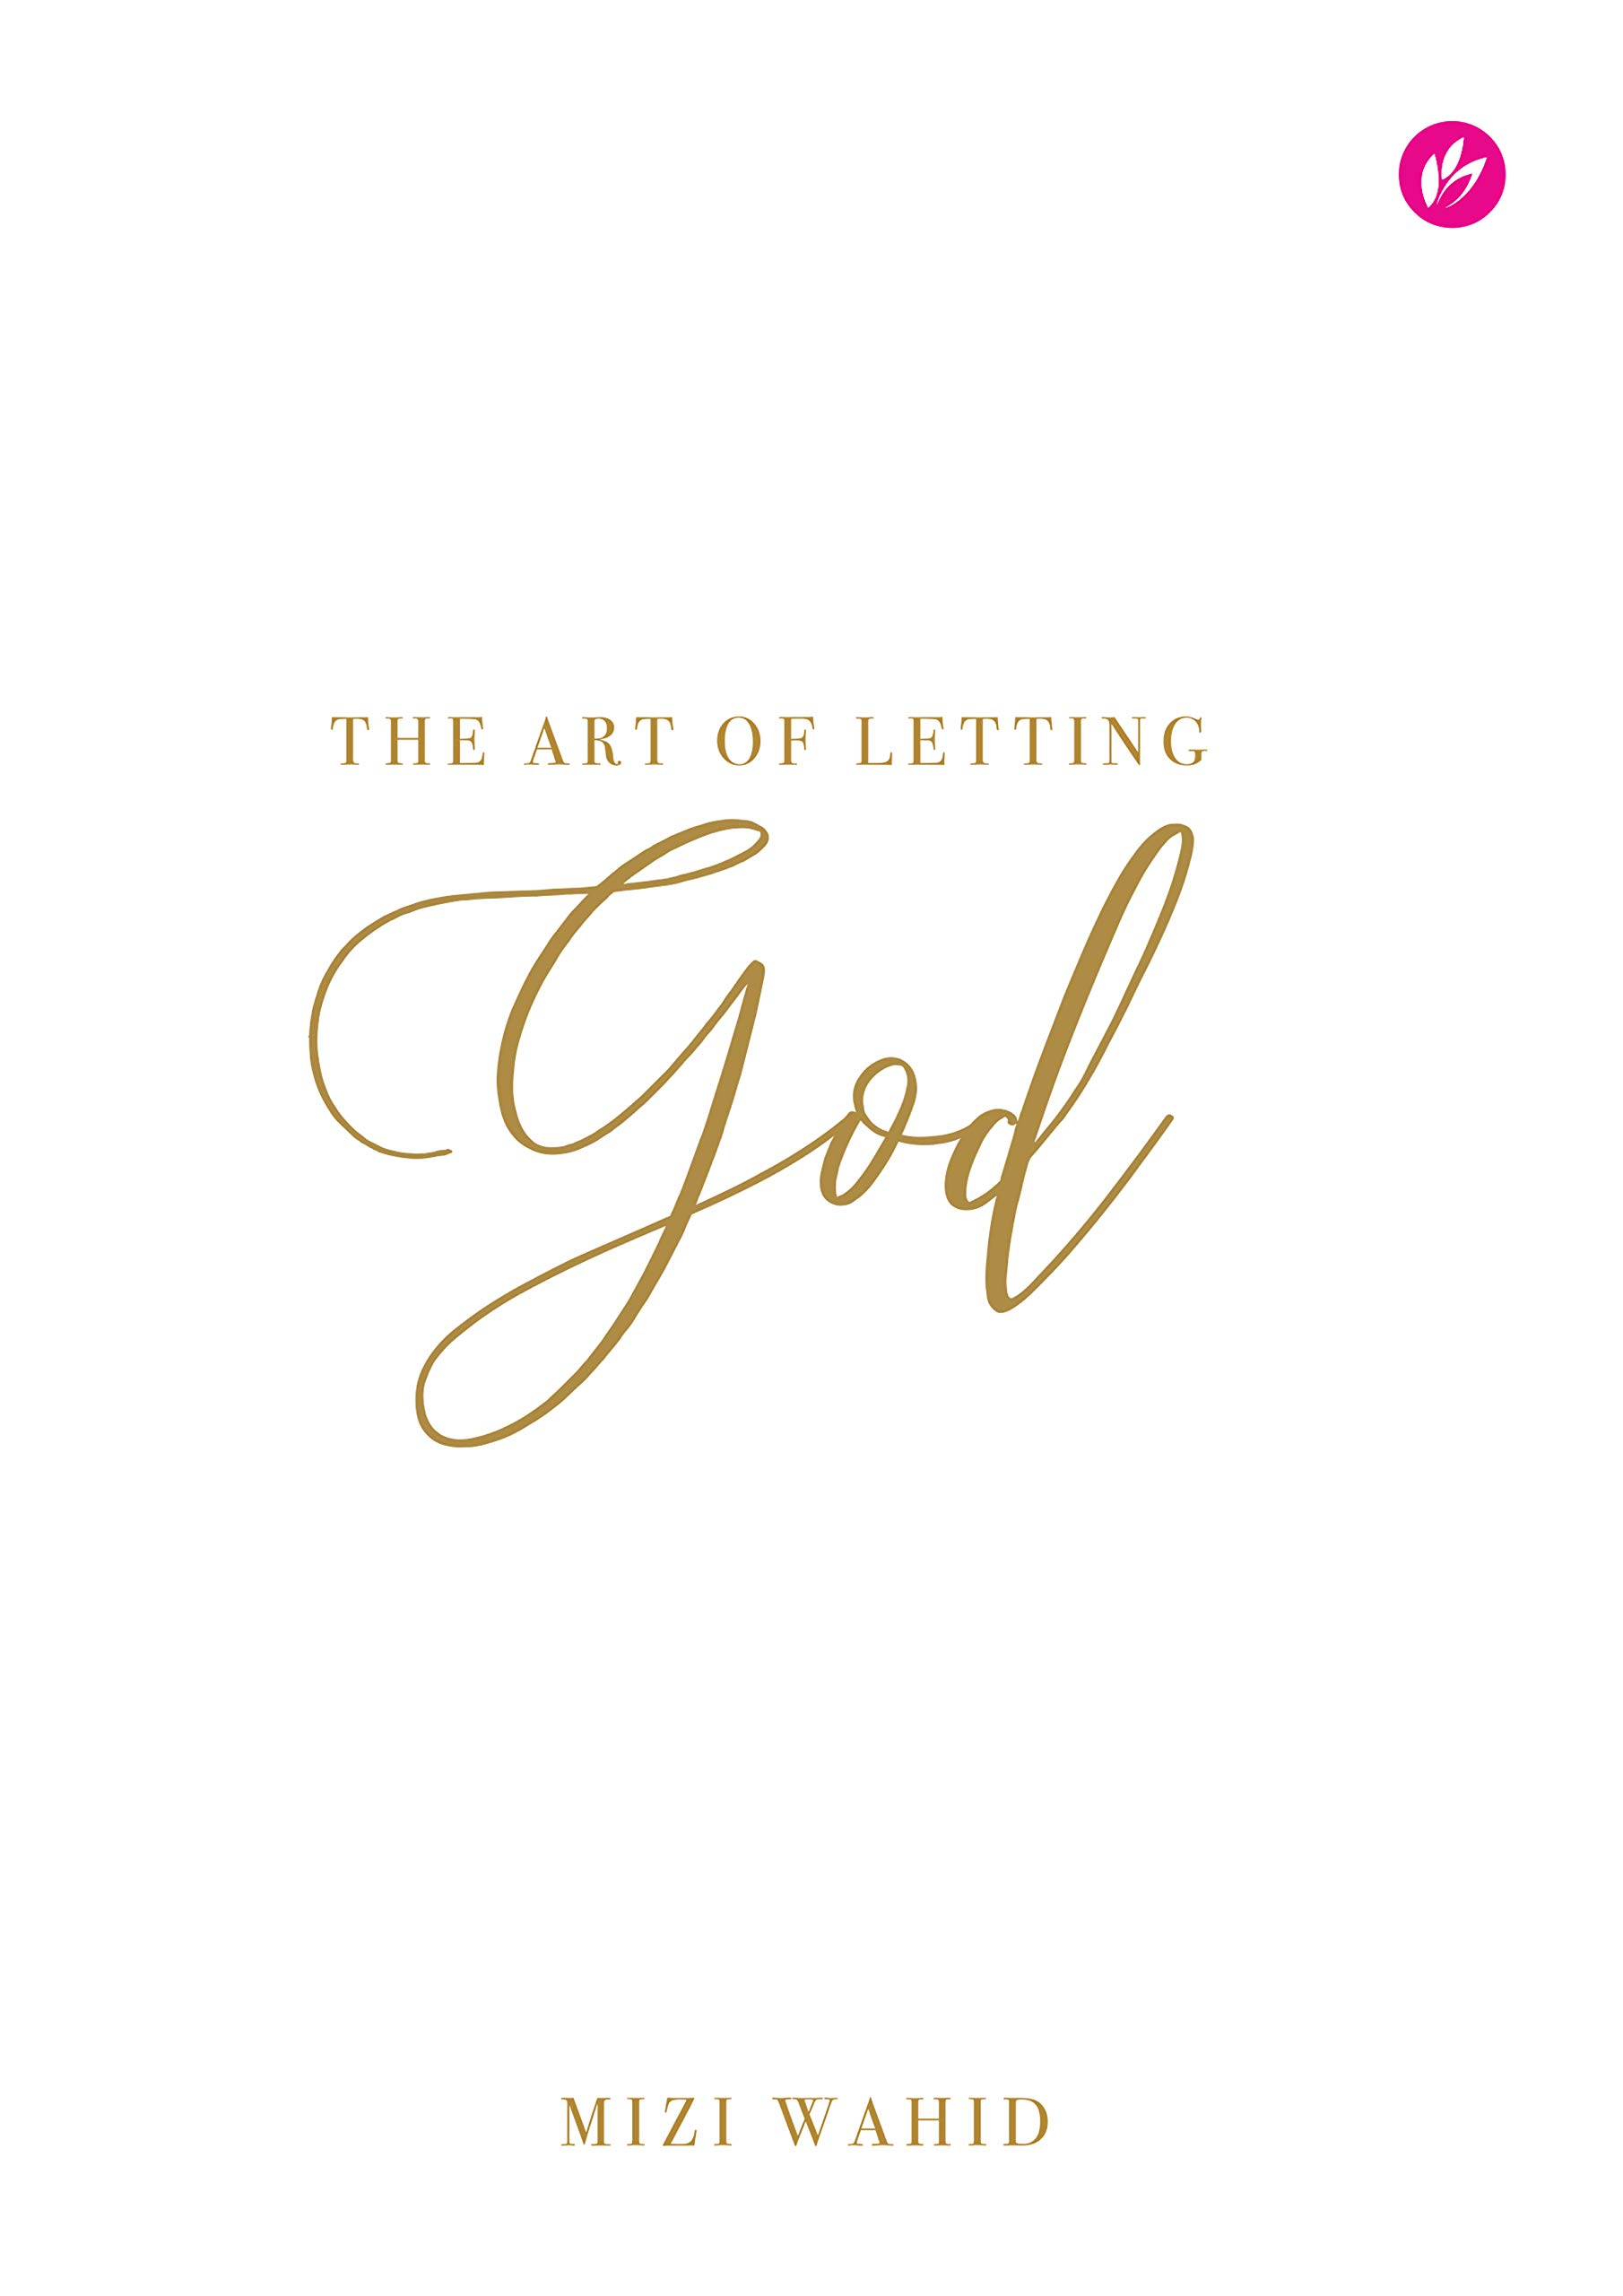 The Art of Letting God: Surrendering all your broken pieces to Him, one prayer at a time.